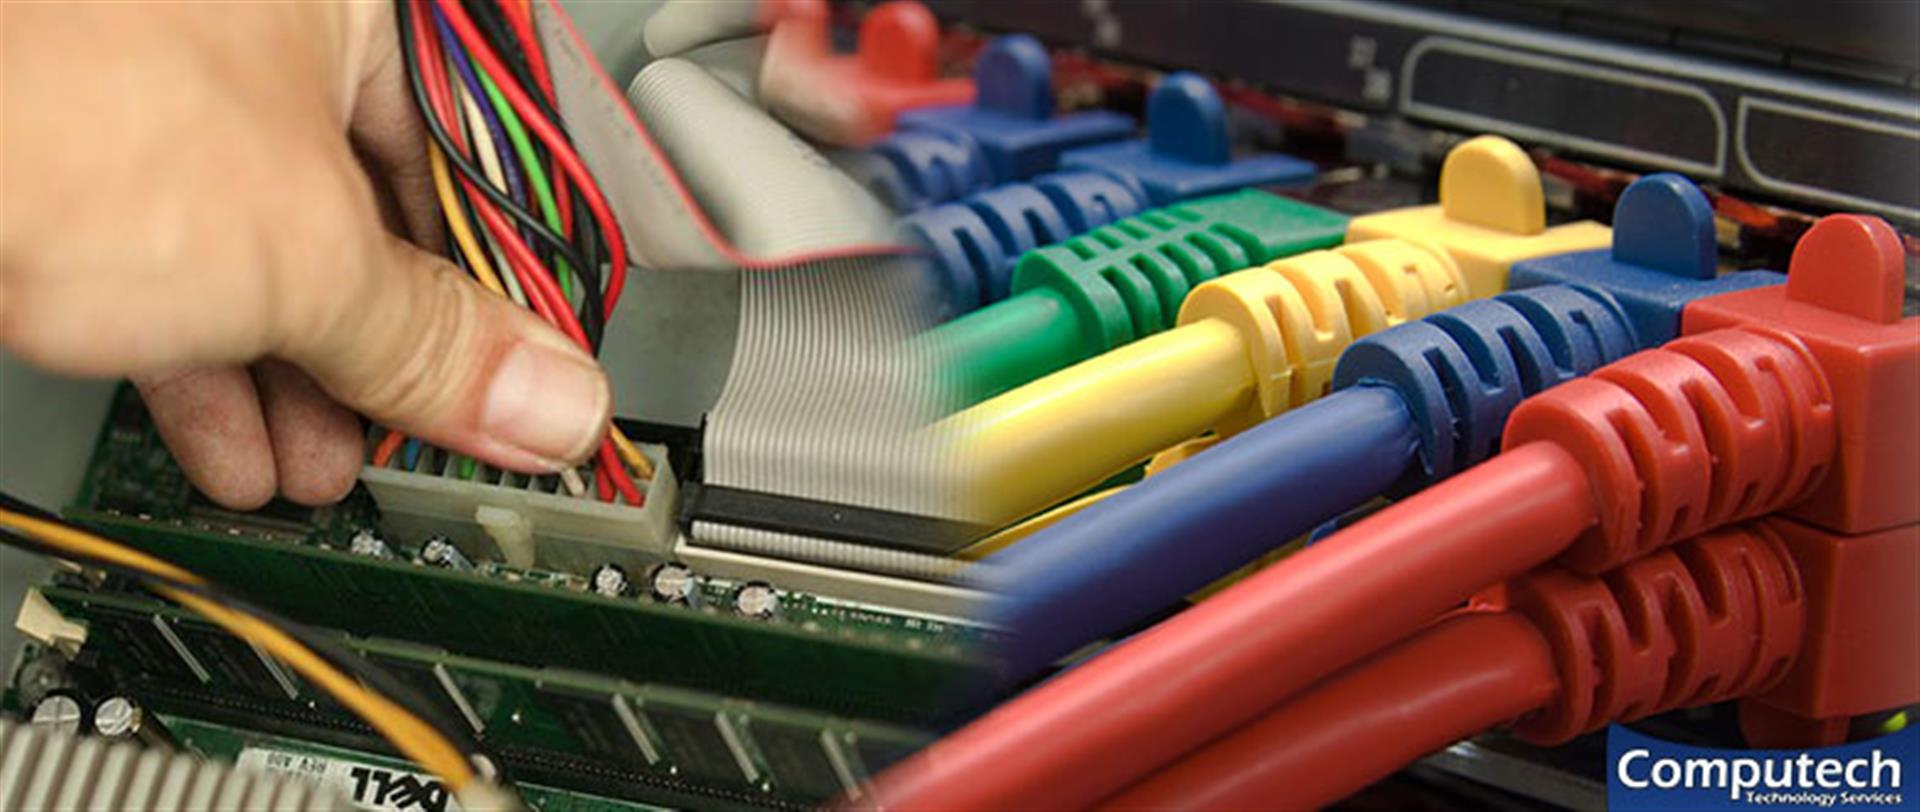 Pikeville Tennessee Onsite PC and Printer Repairs, Networks, Voice & Data Cabling Services